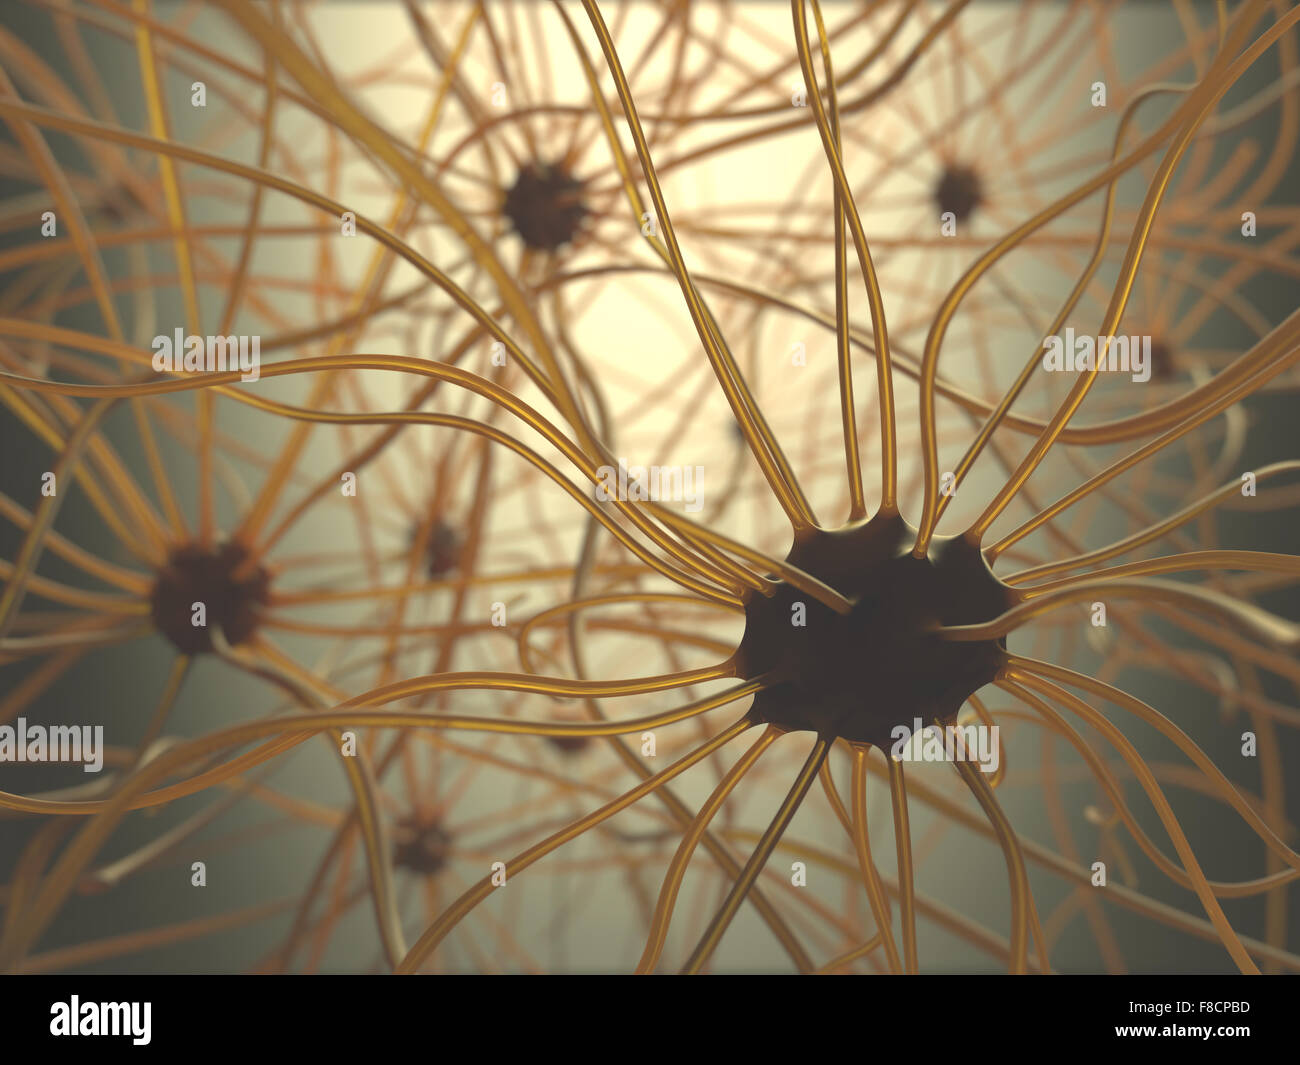 Image concept of neurons interconnected in a complex brain network. - Stock Image